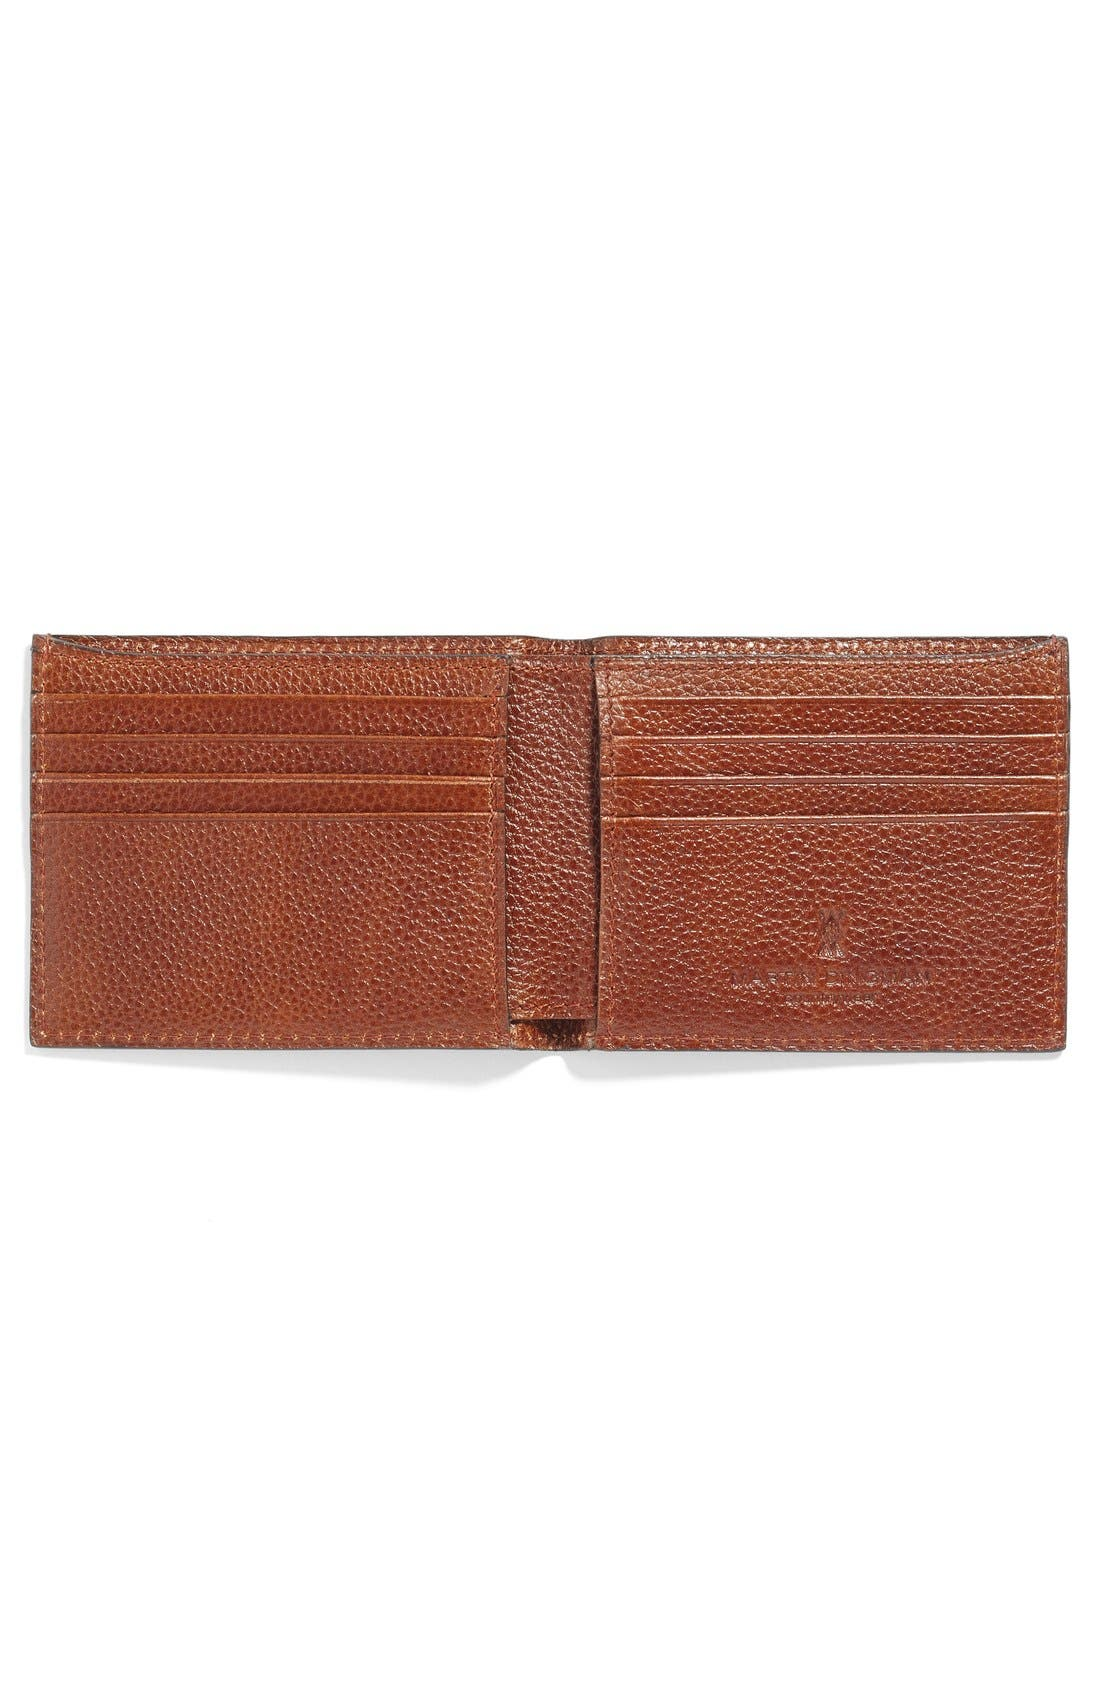 Leather Wallet,                             Alternate thumbnail 4, color,